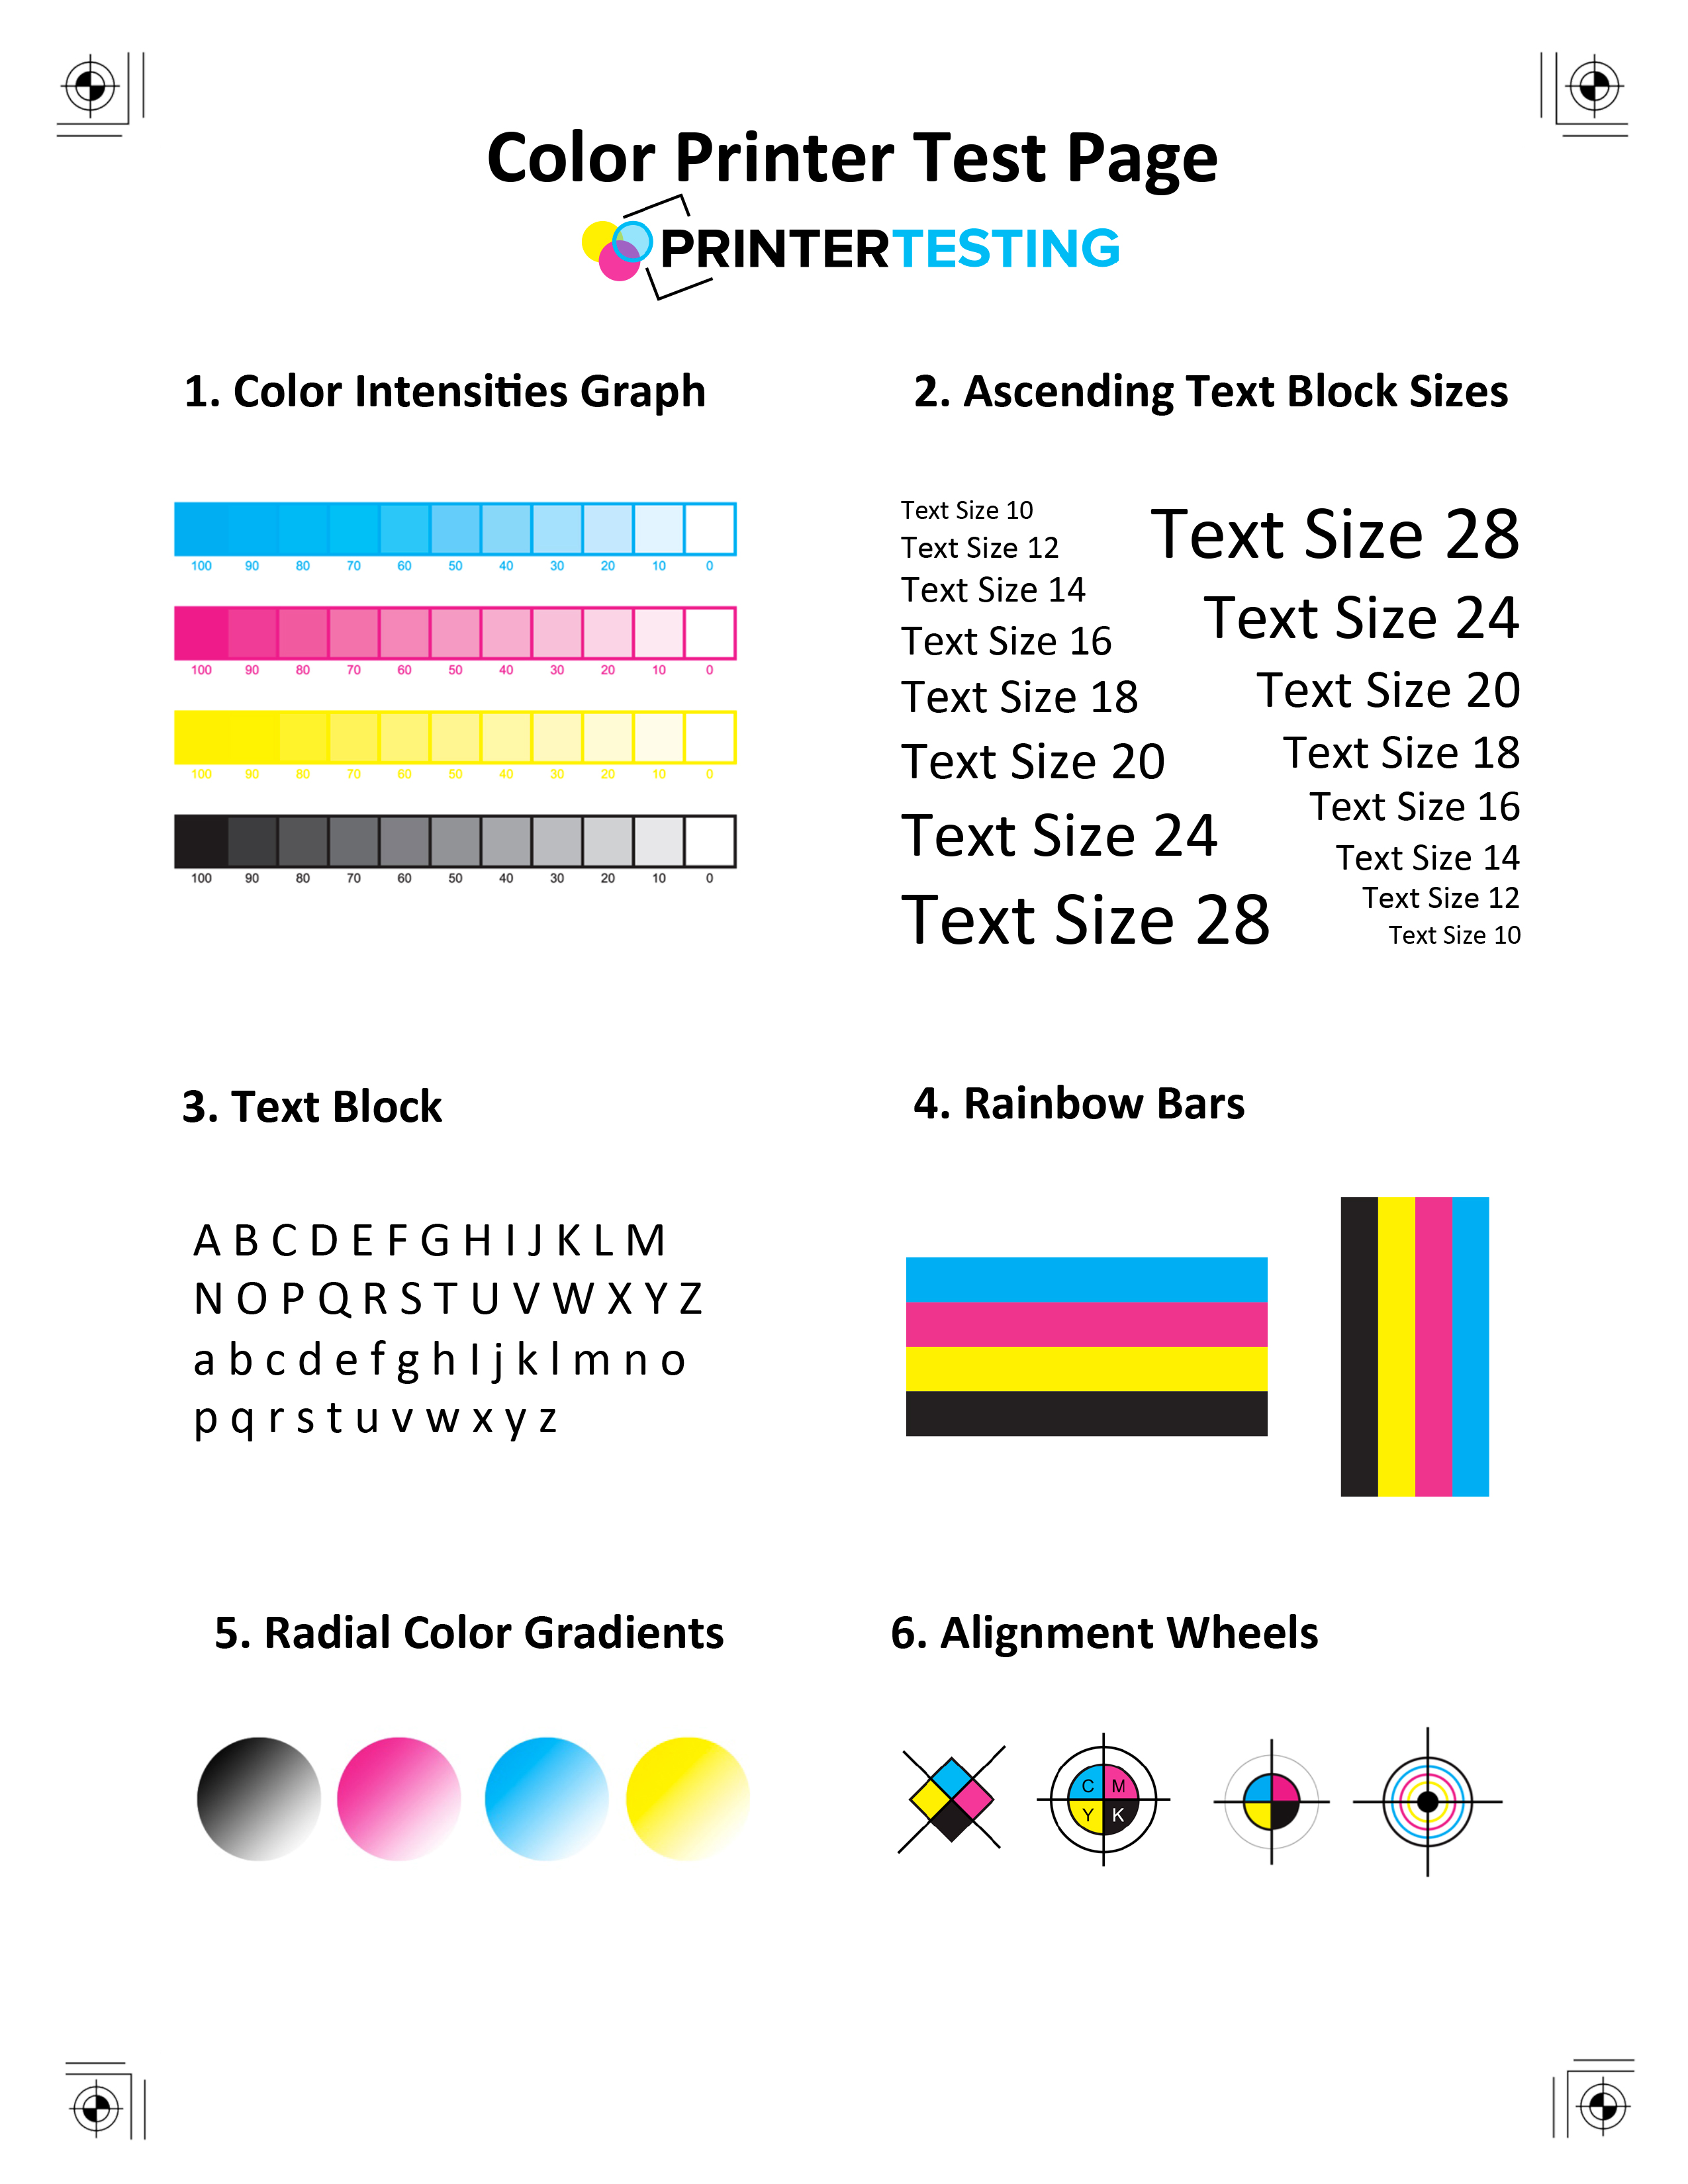 Color Printer test page